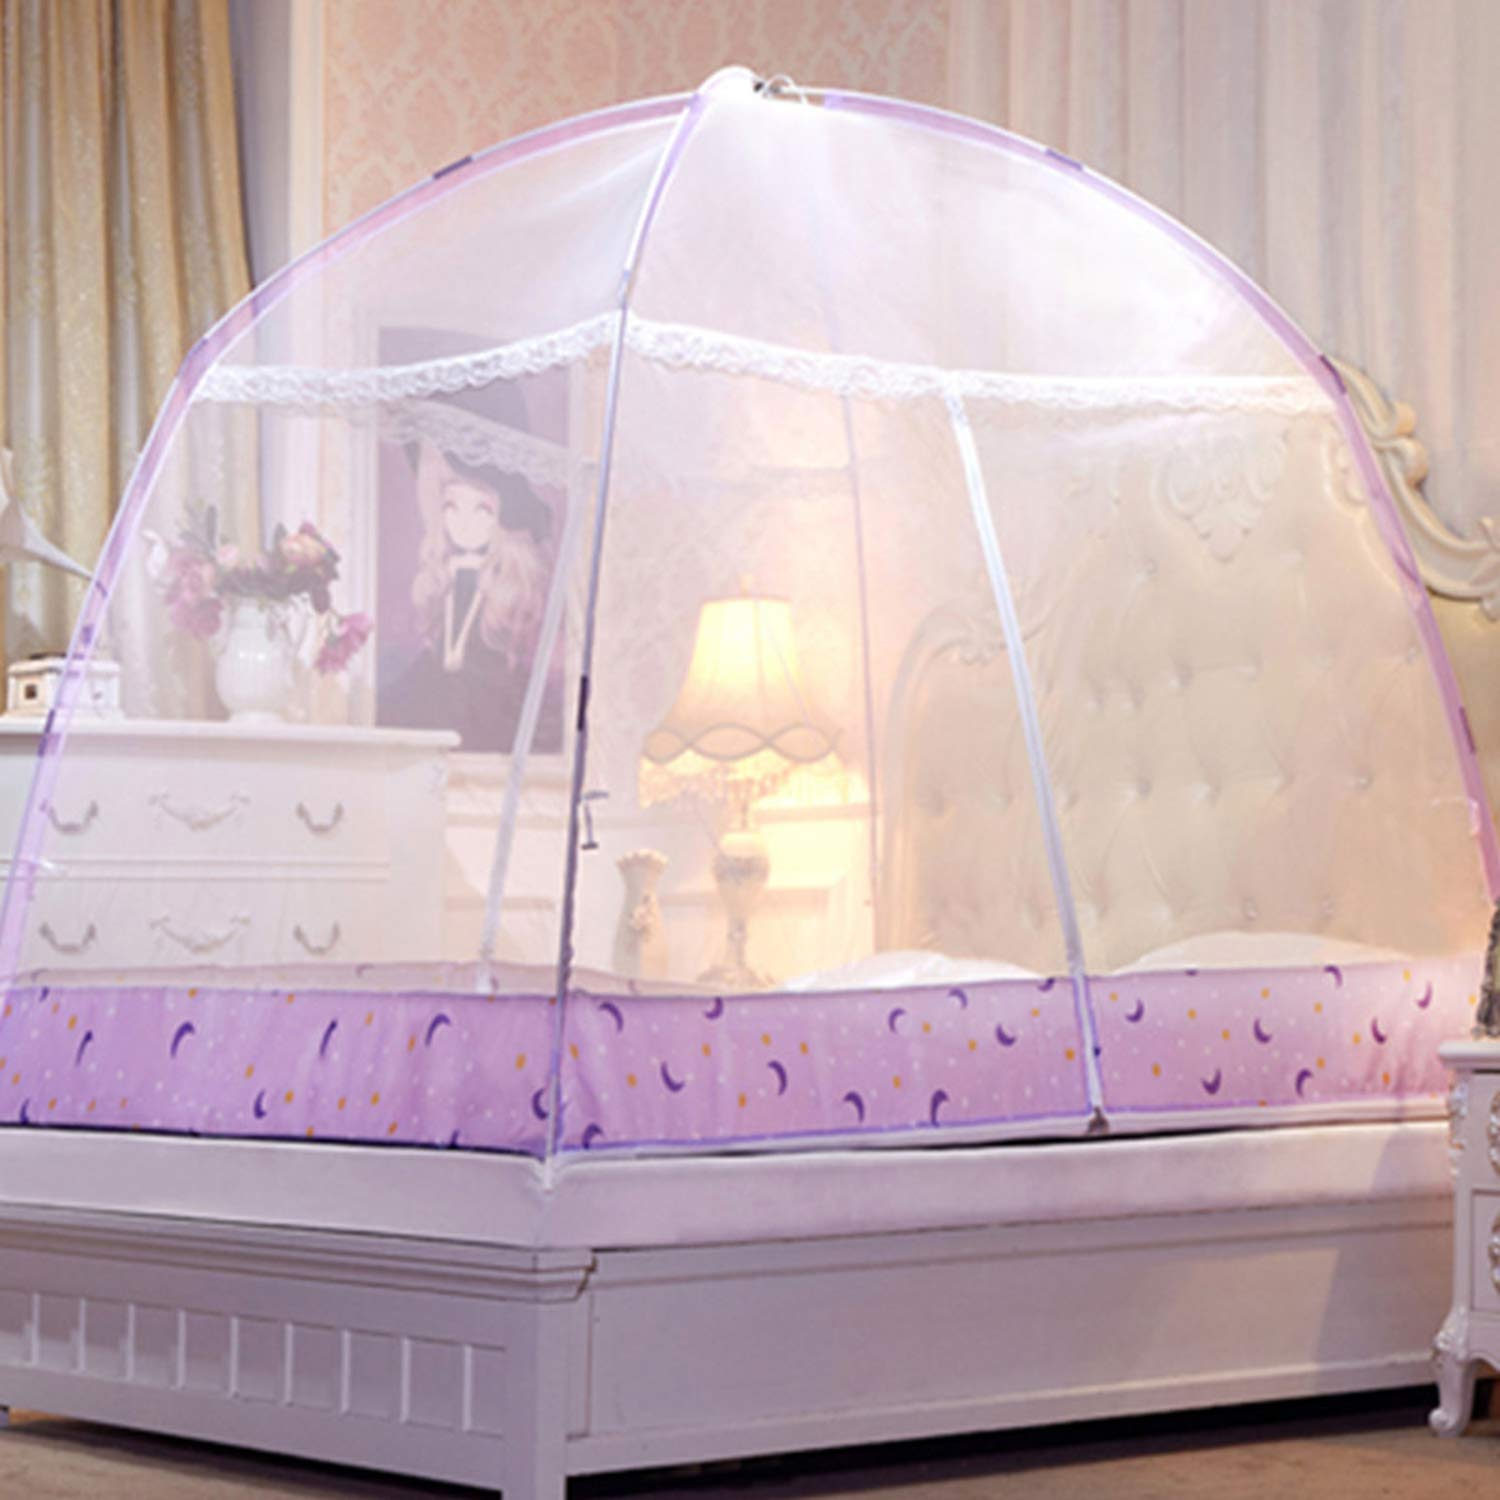 Romantic Purple Dome Mosquito Net Double Door Polyester Fabric Bed Netting Canopy Mosquito Netting Folding Netting Tent Bed,White,1.5m (5 feet) Bed by SuWuan mosquito net (Image #5)